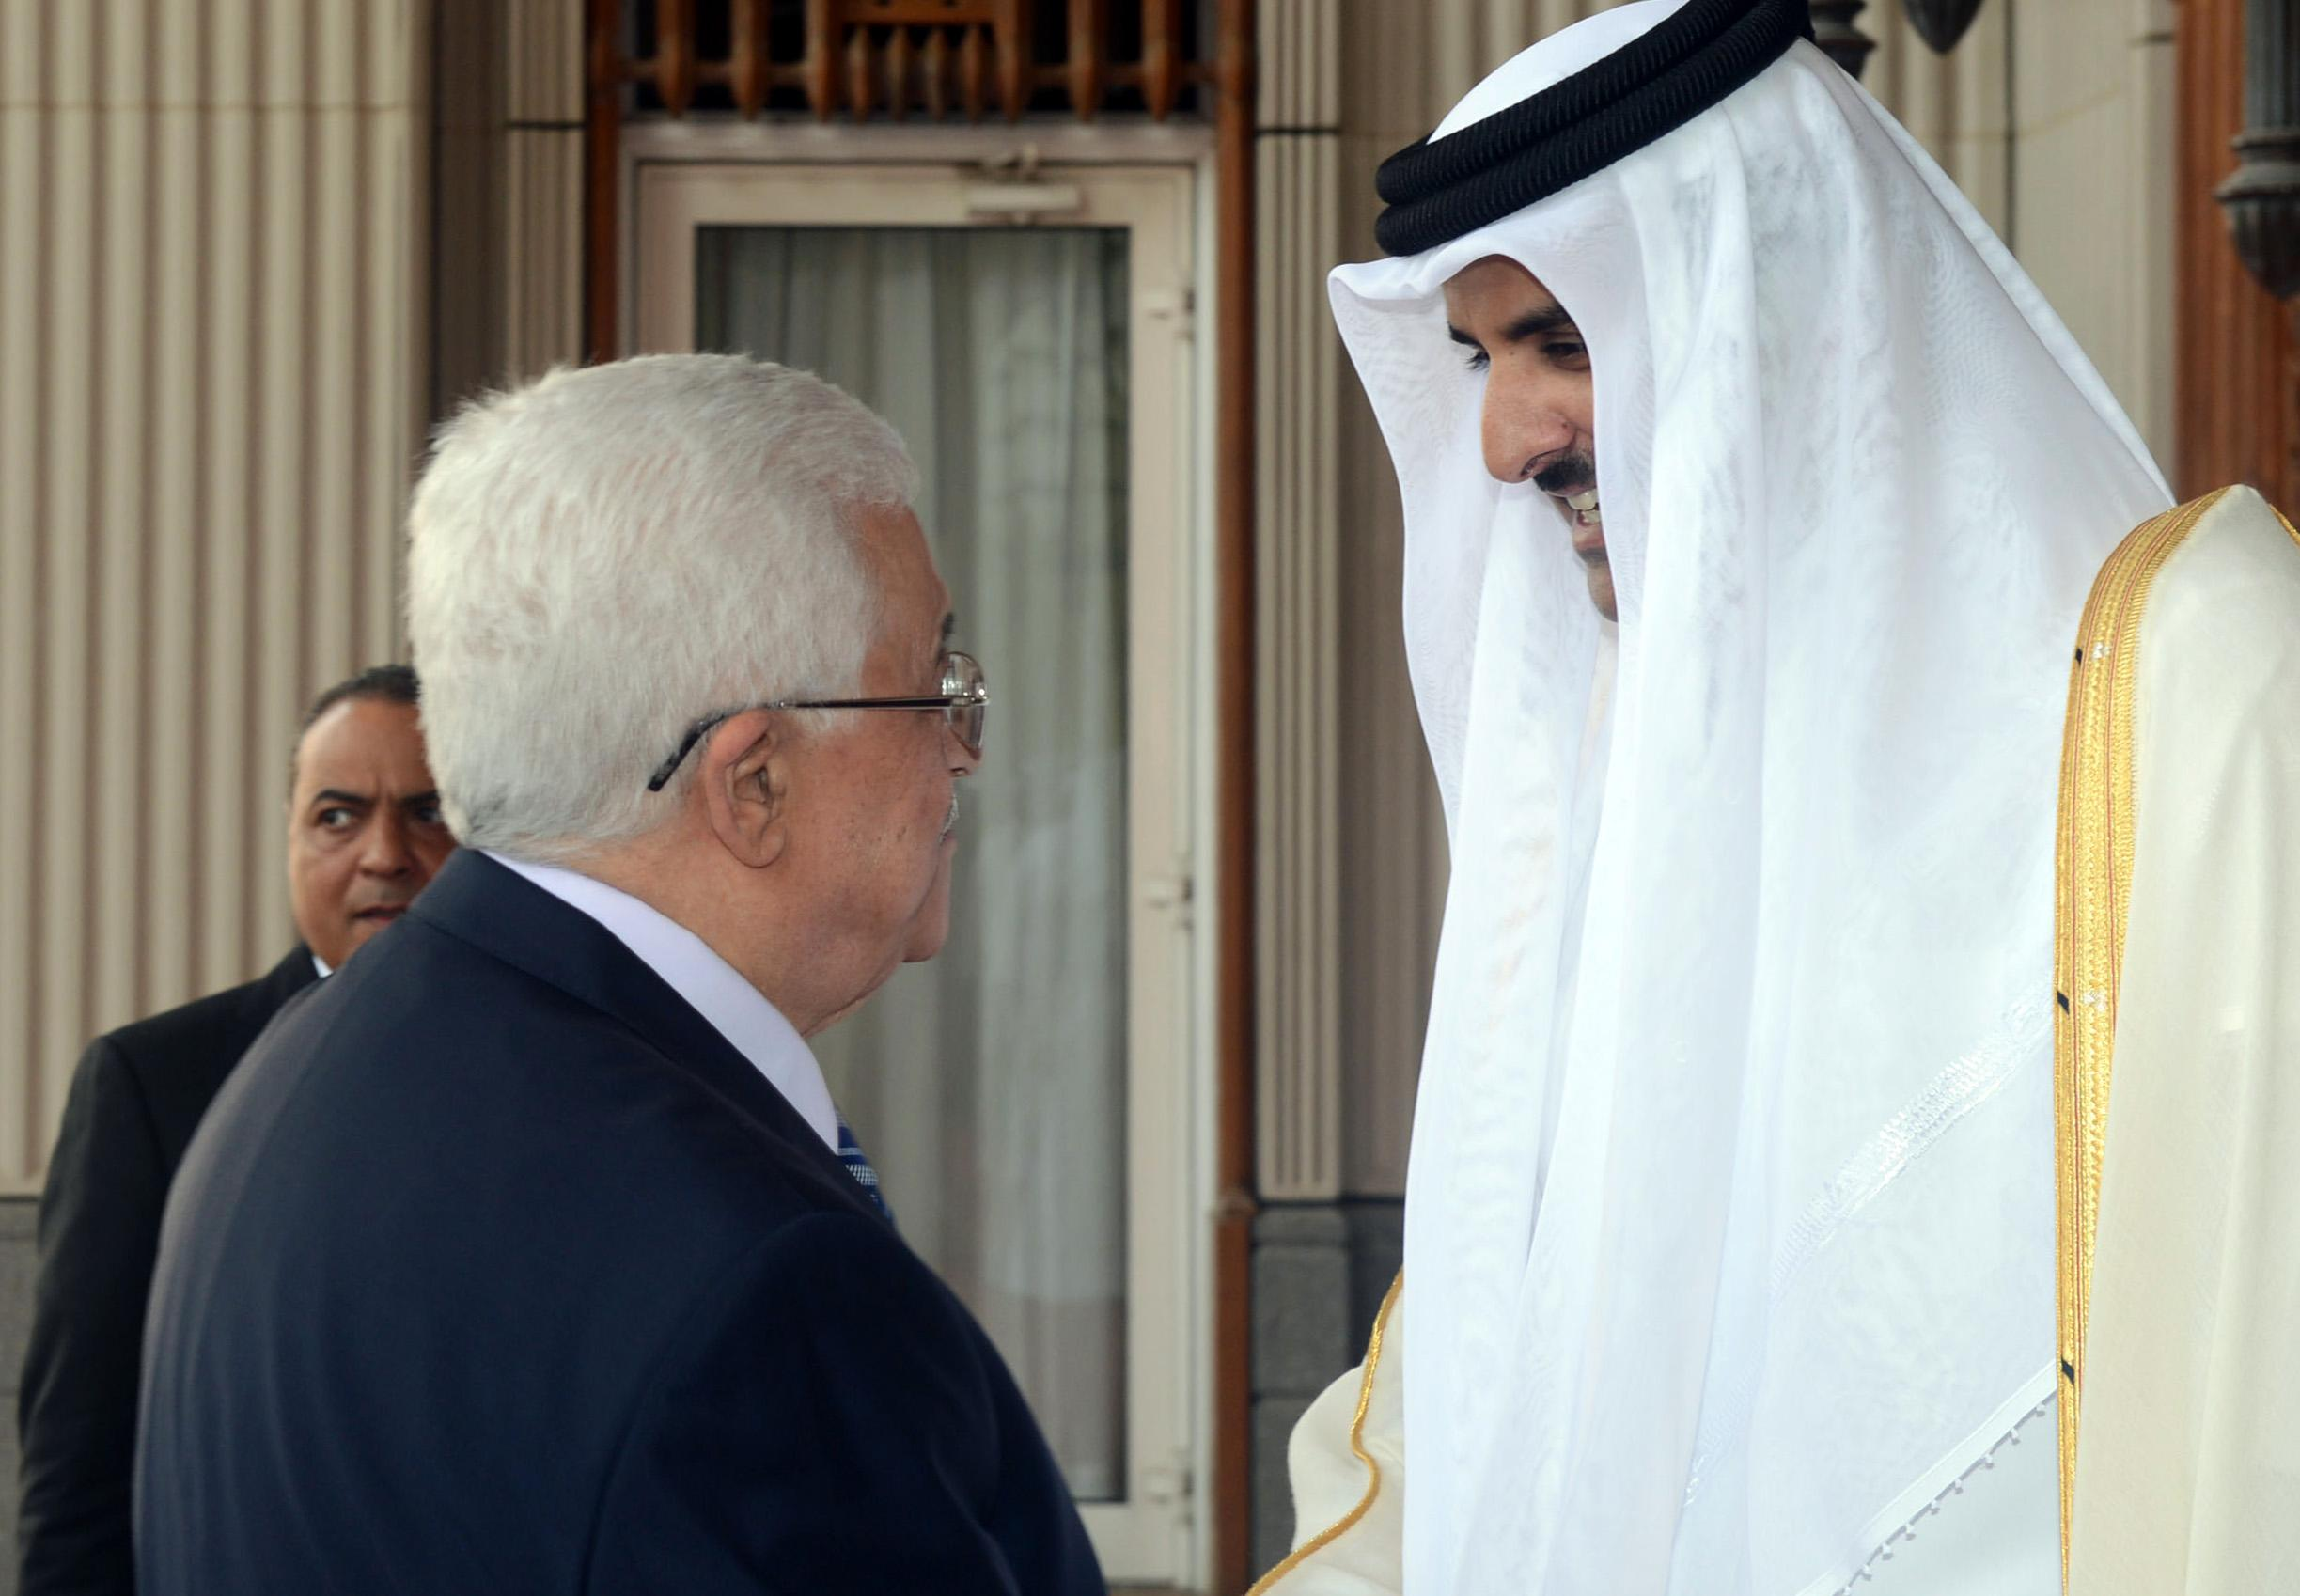 Palestinian president Mahmud Abbas (L) greets Emir of Qatar Sheikh Tamim Bin Hamad al-Thani in Doha on August 21, 2014, in a pictured released by the president's office (AFP Photo/)